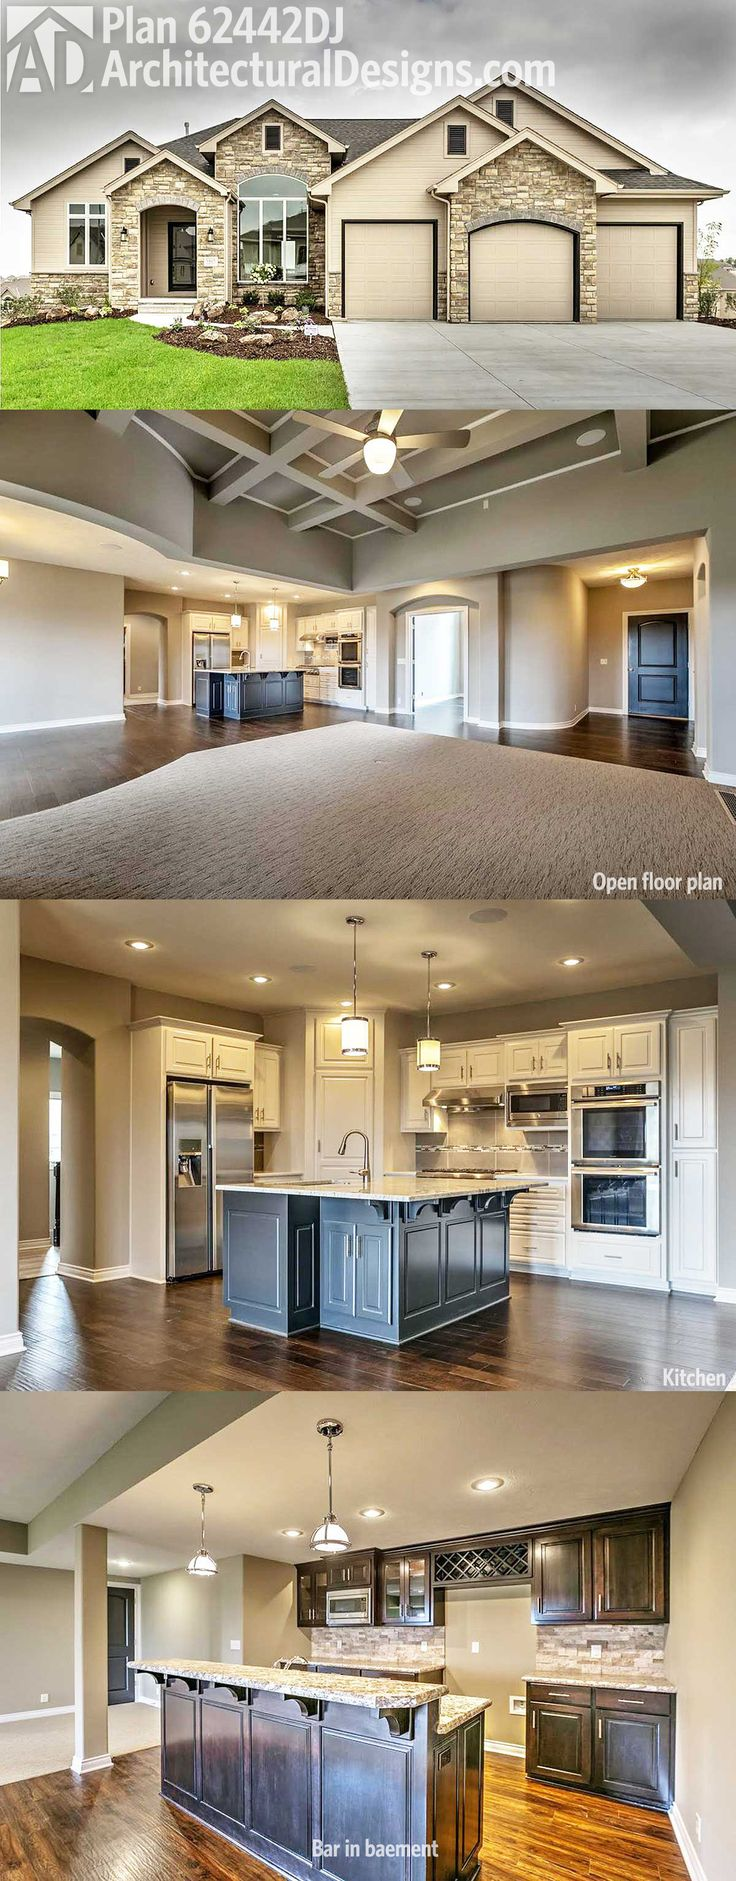 Architectural Designs House Plan 62442dj Comes To Life This Design Gives You An Open Floor